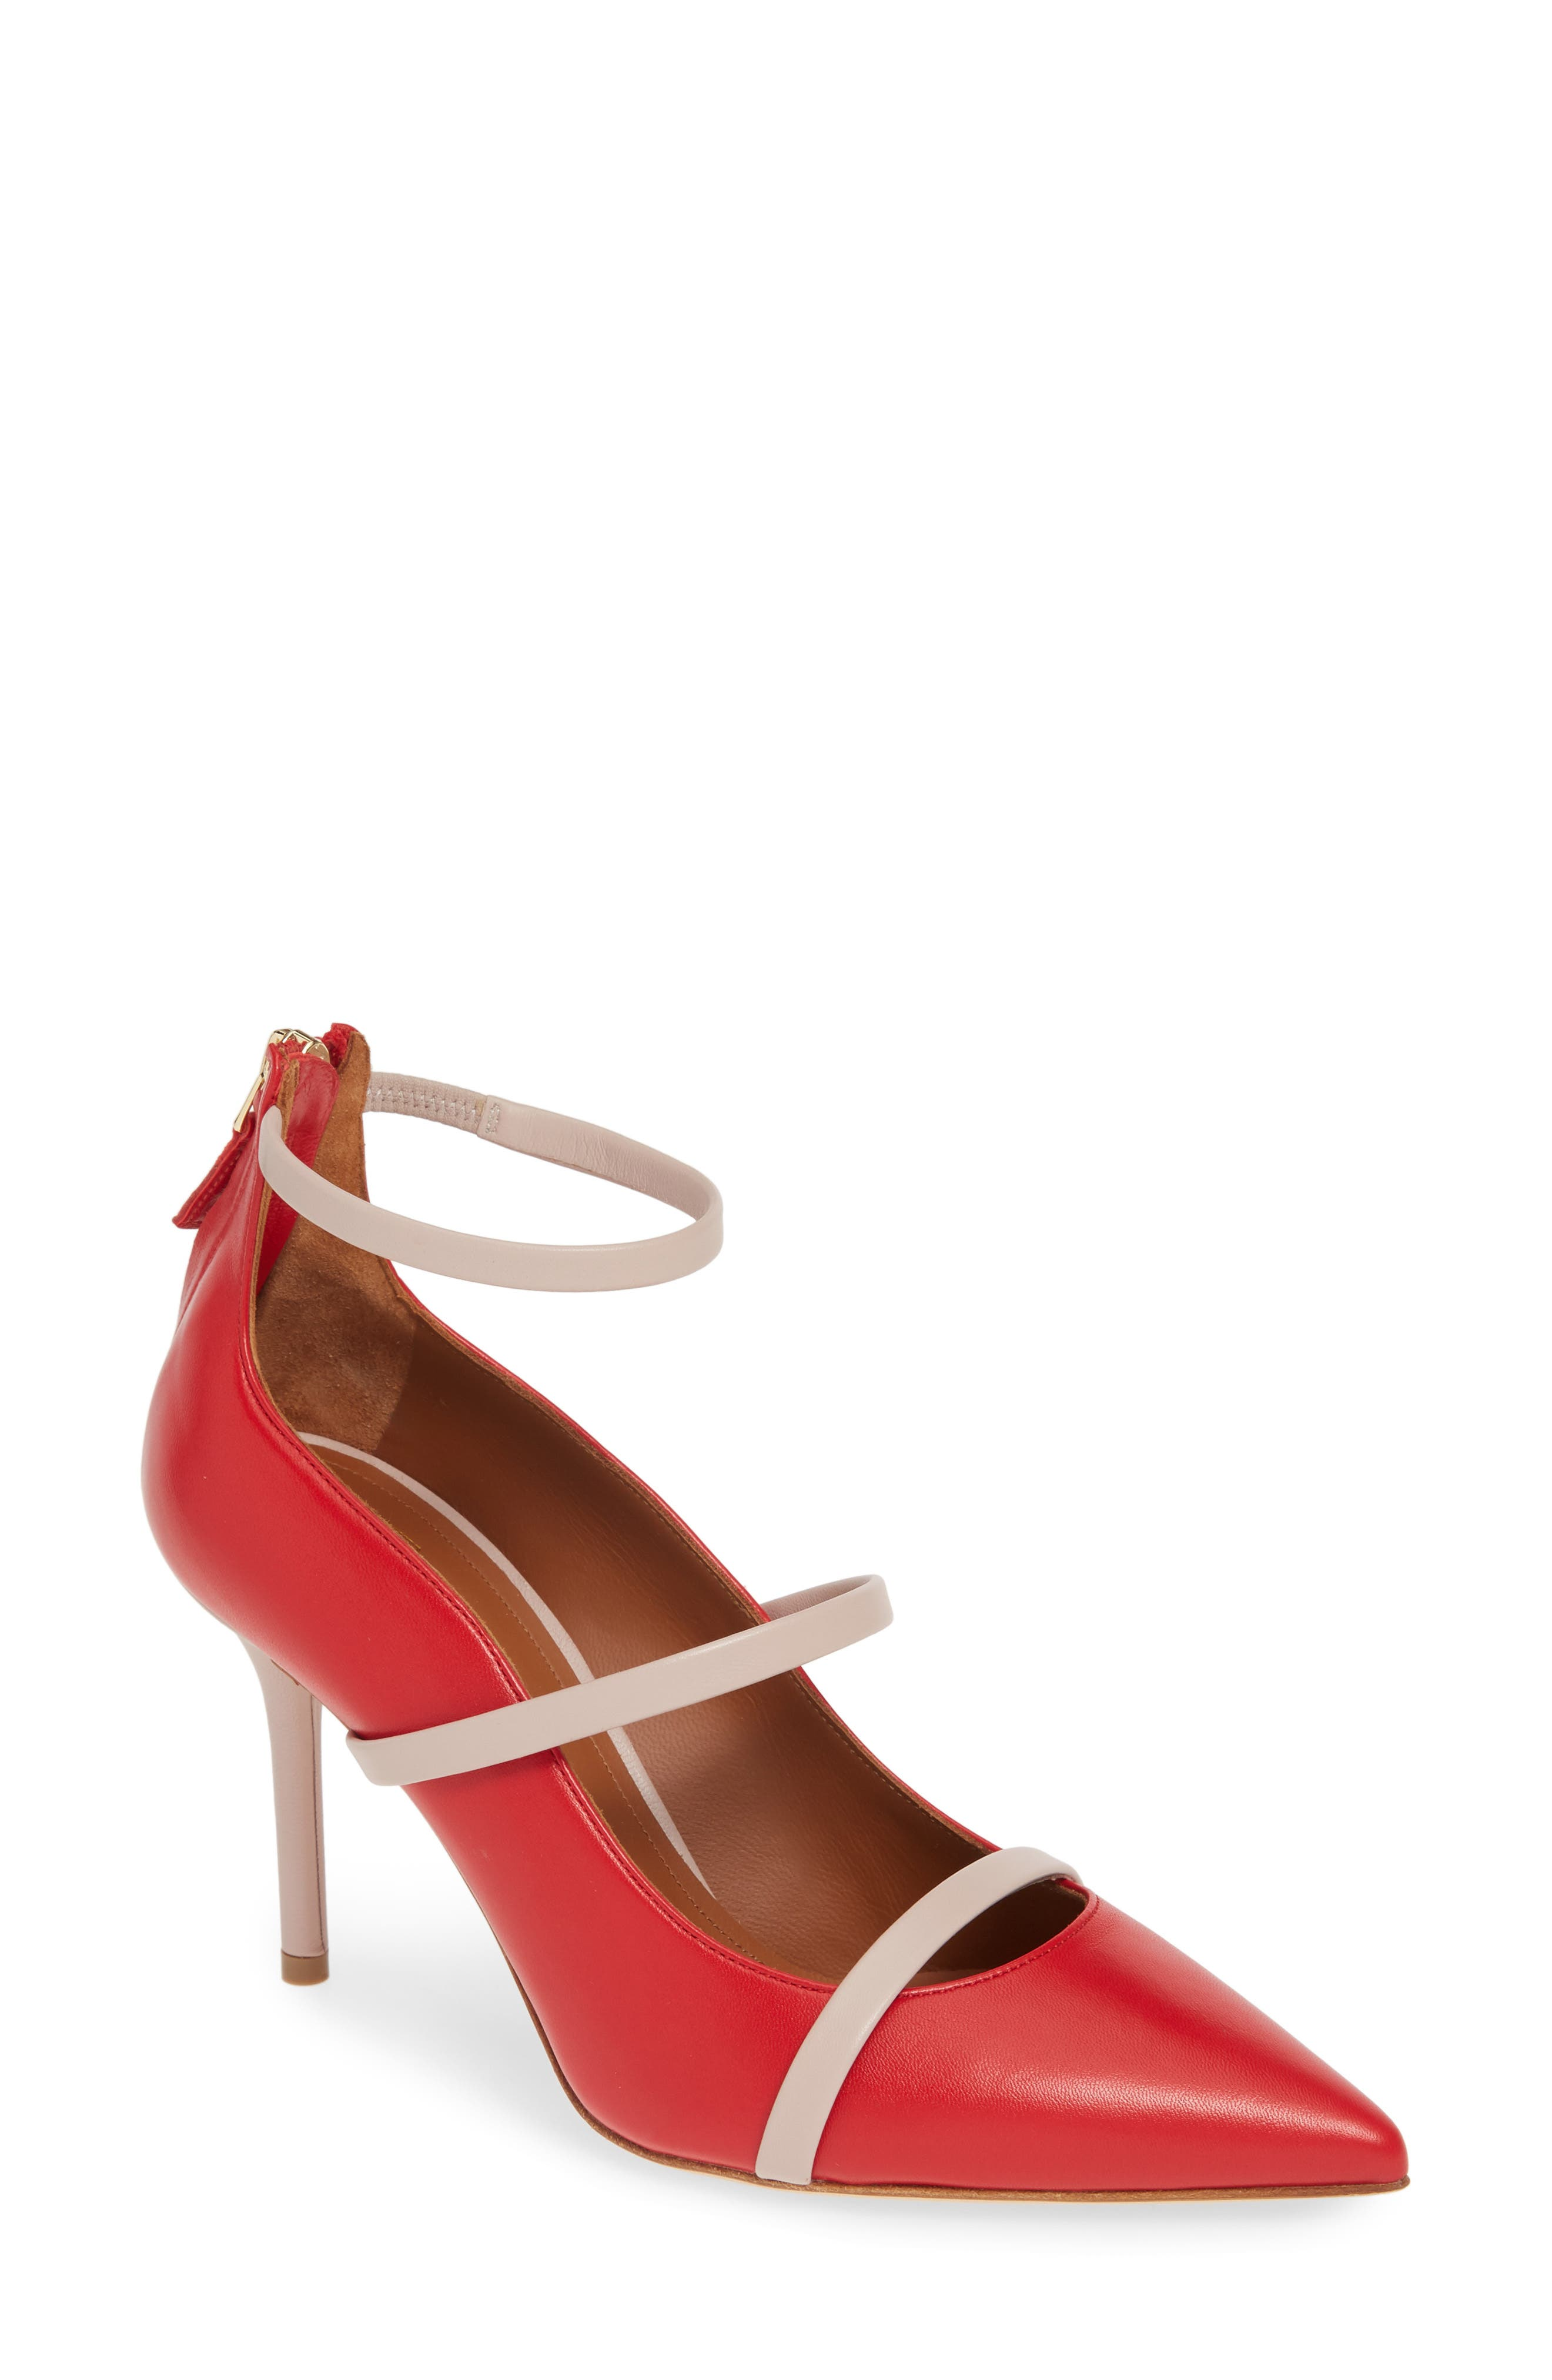 Malone Souliers Robyn Ankle Strap Pump, Red